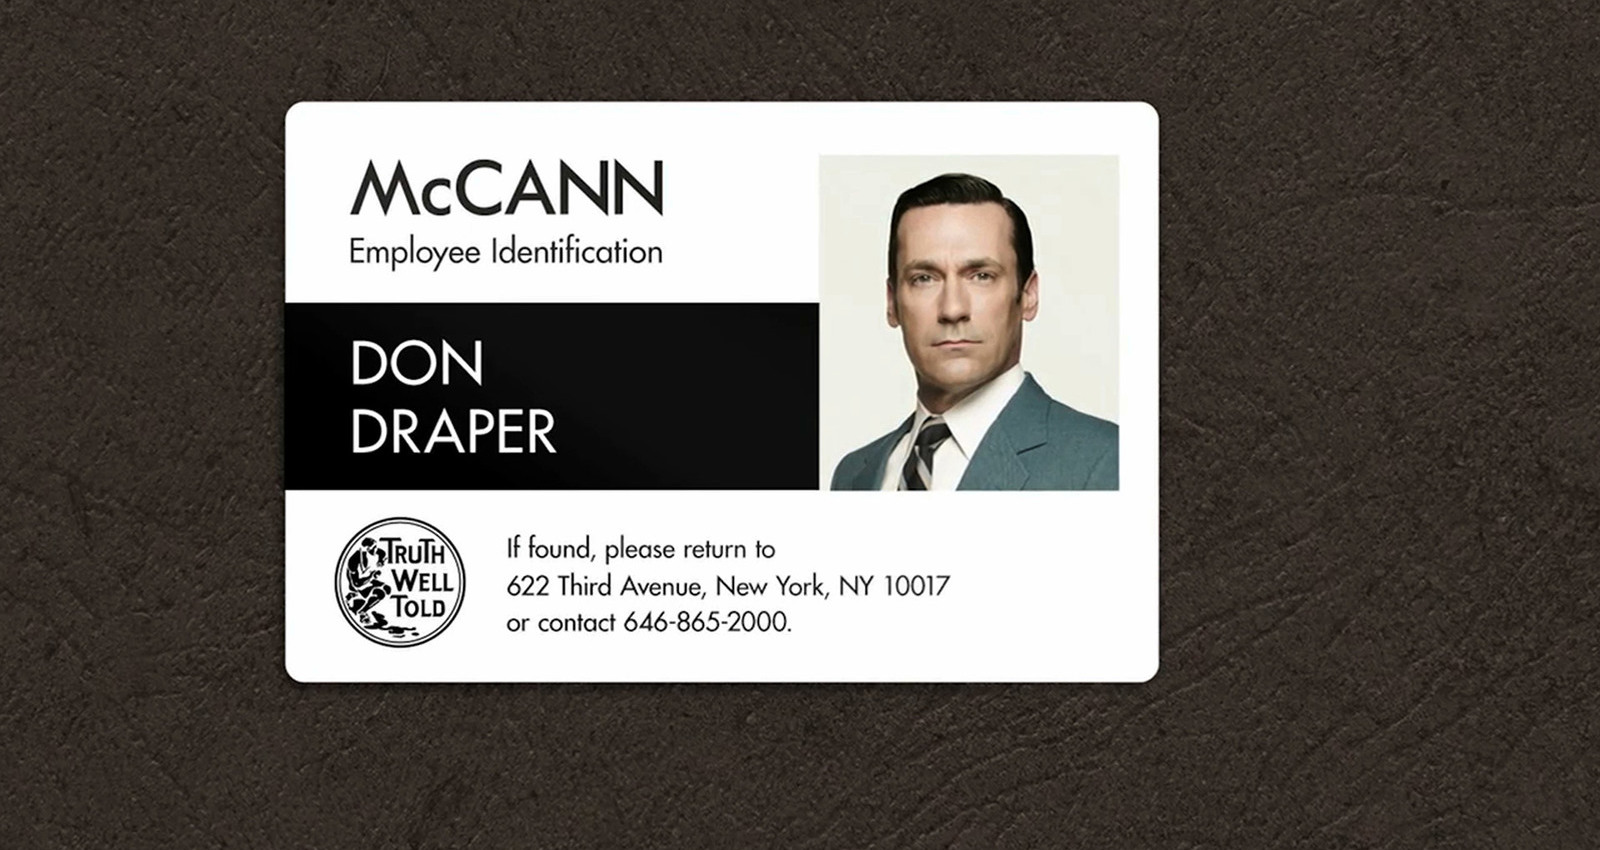 Real McCann vs Mad Men McCann